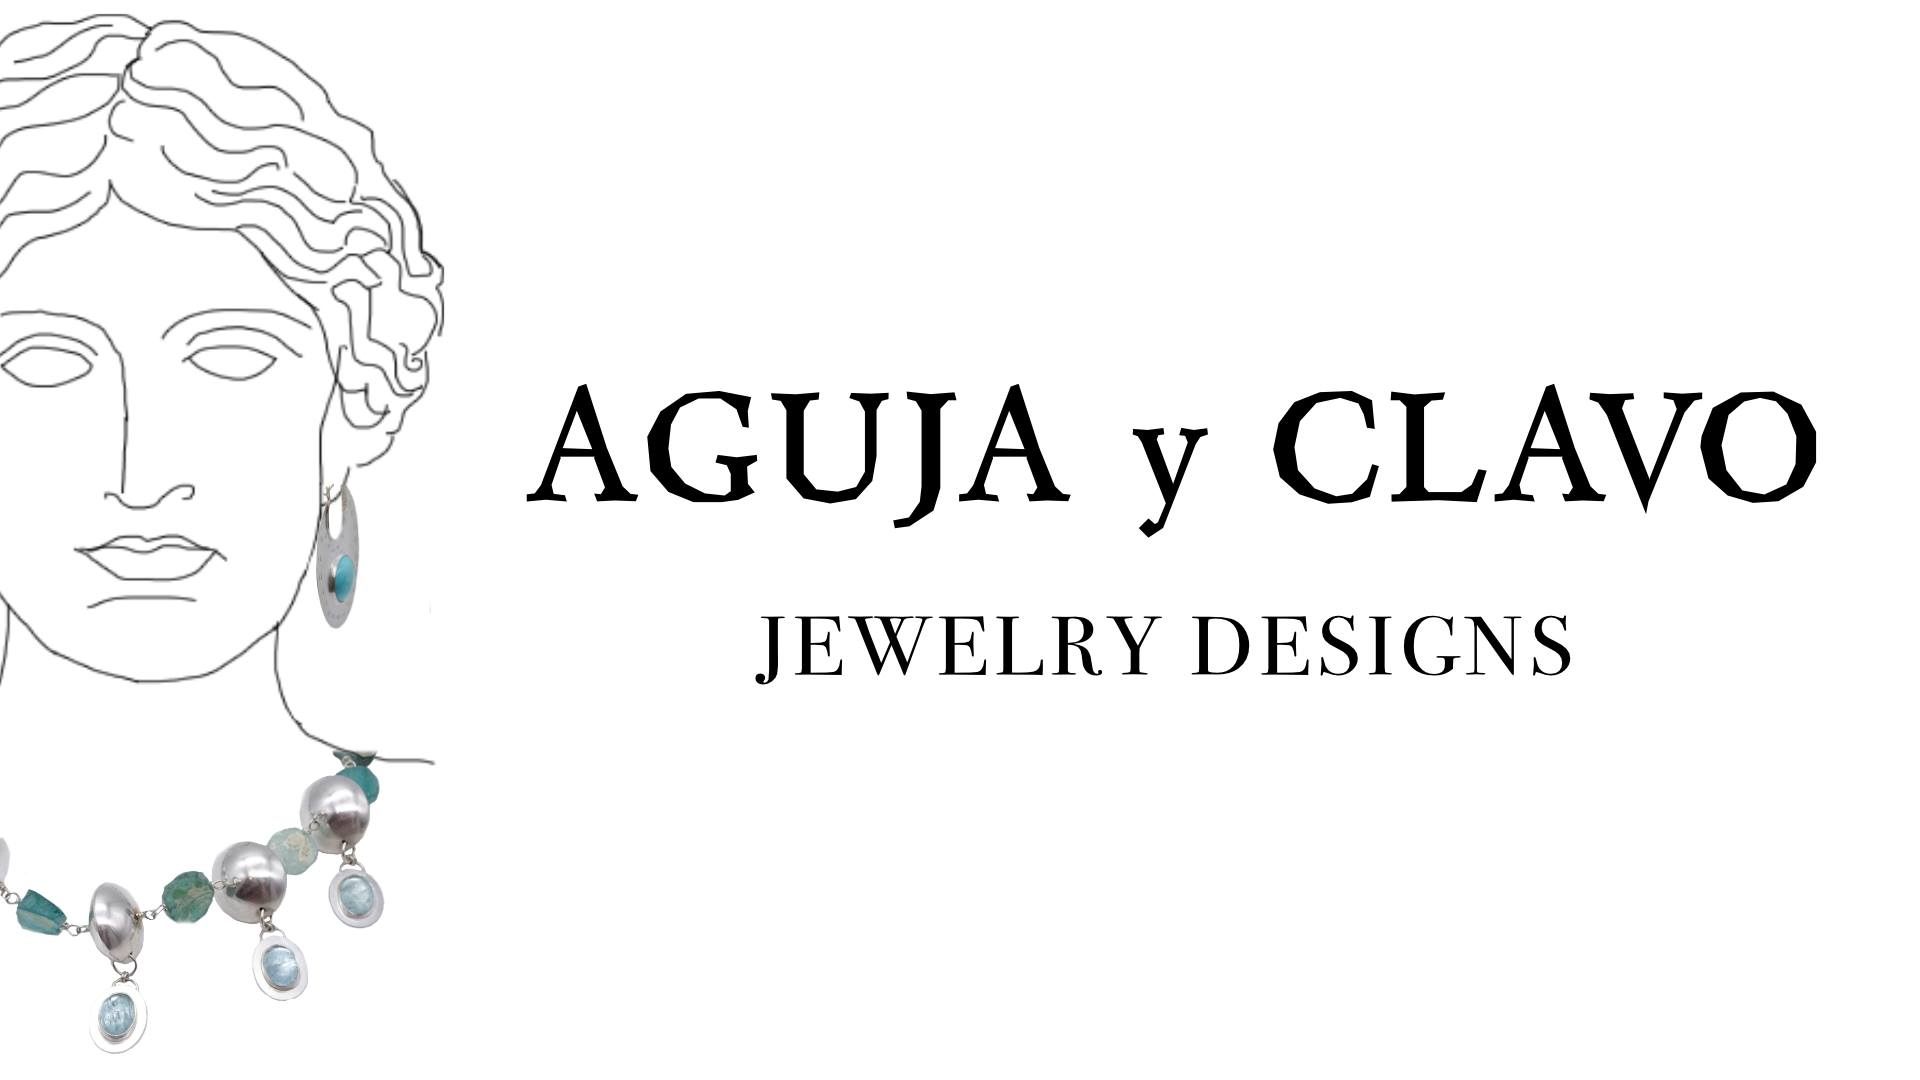 Aguja y Clavo Jewelry Designs Trunk Show - Silk Road Connection